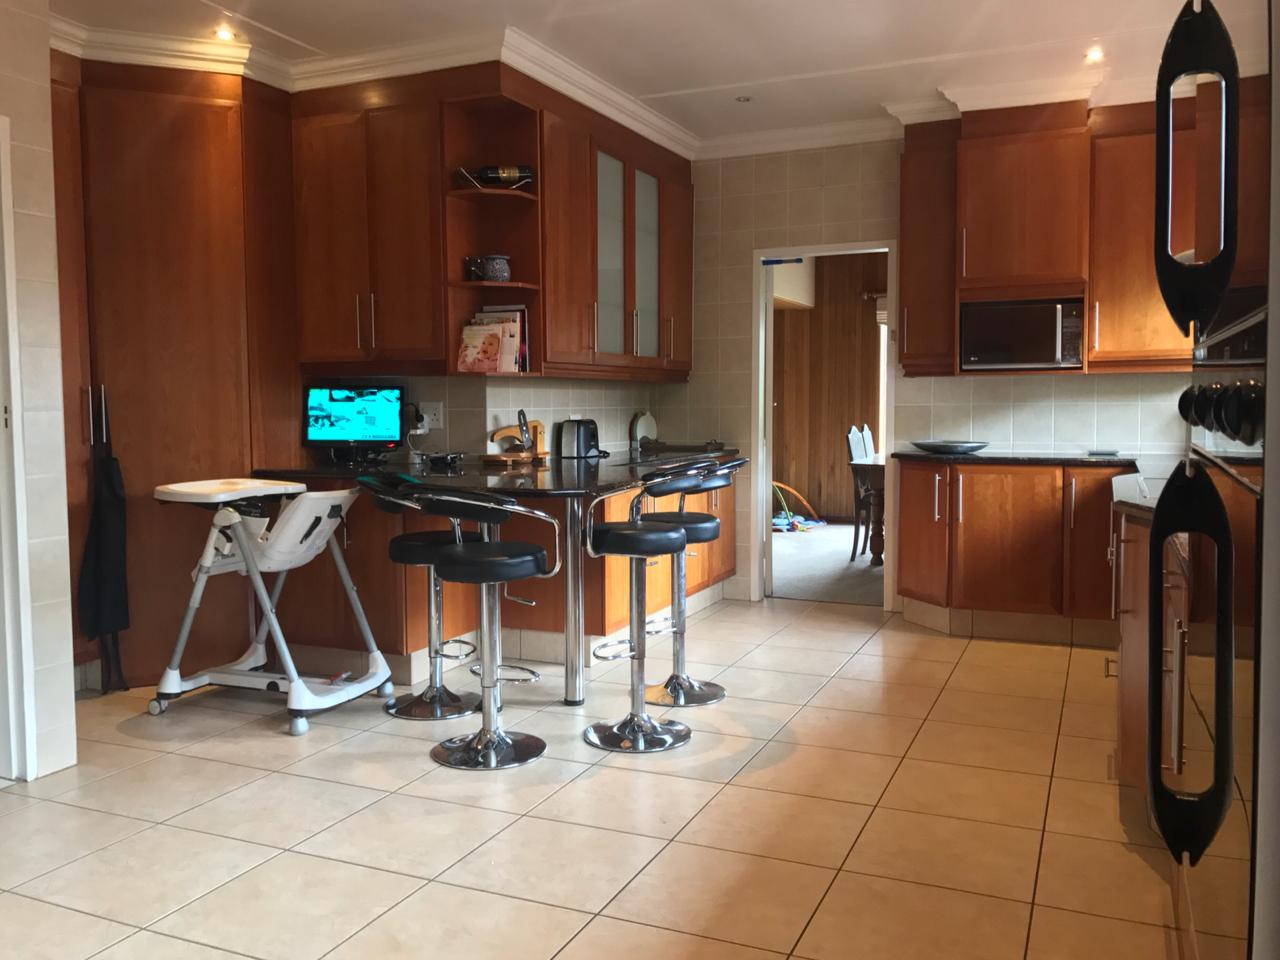 Spacious family home in Edenvale avenues